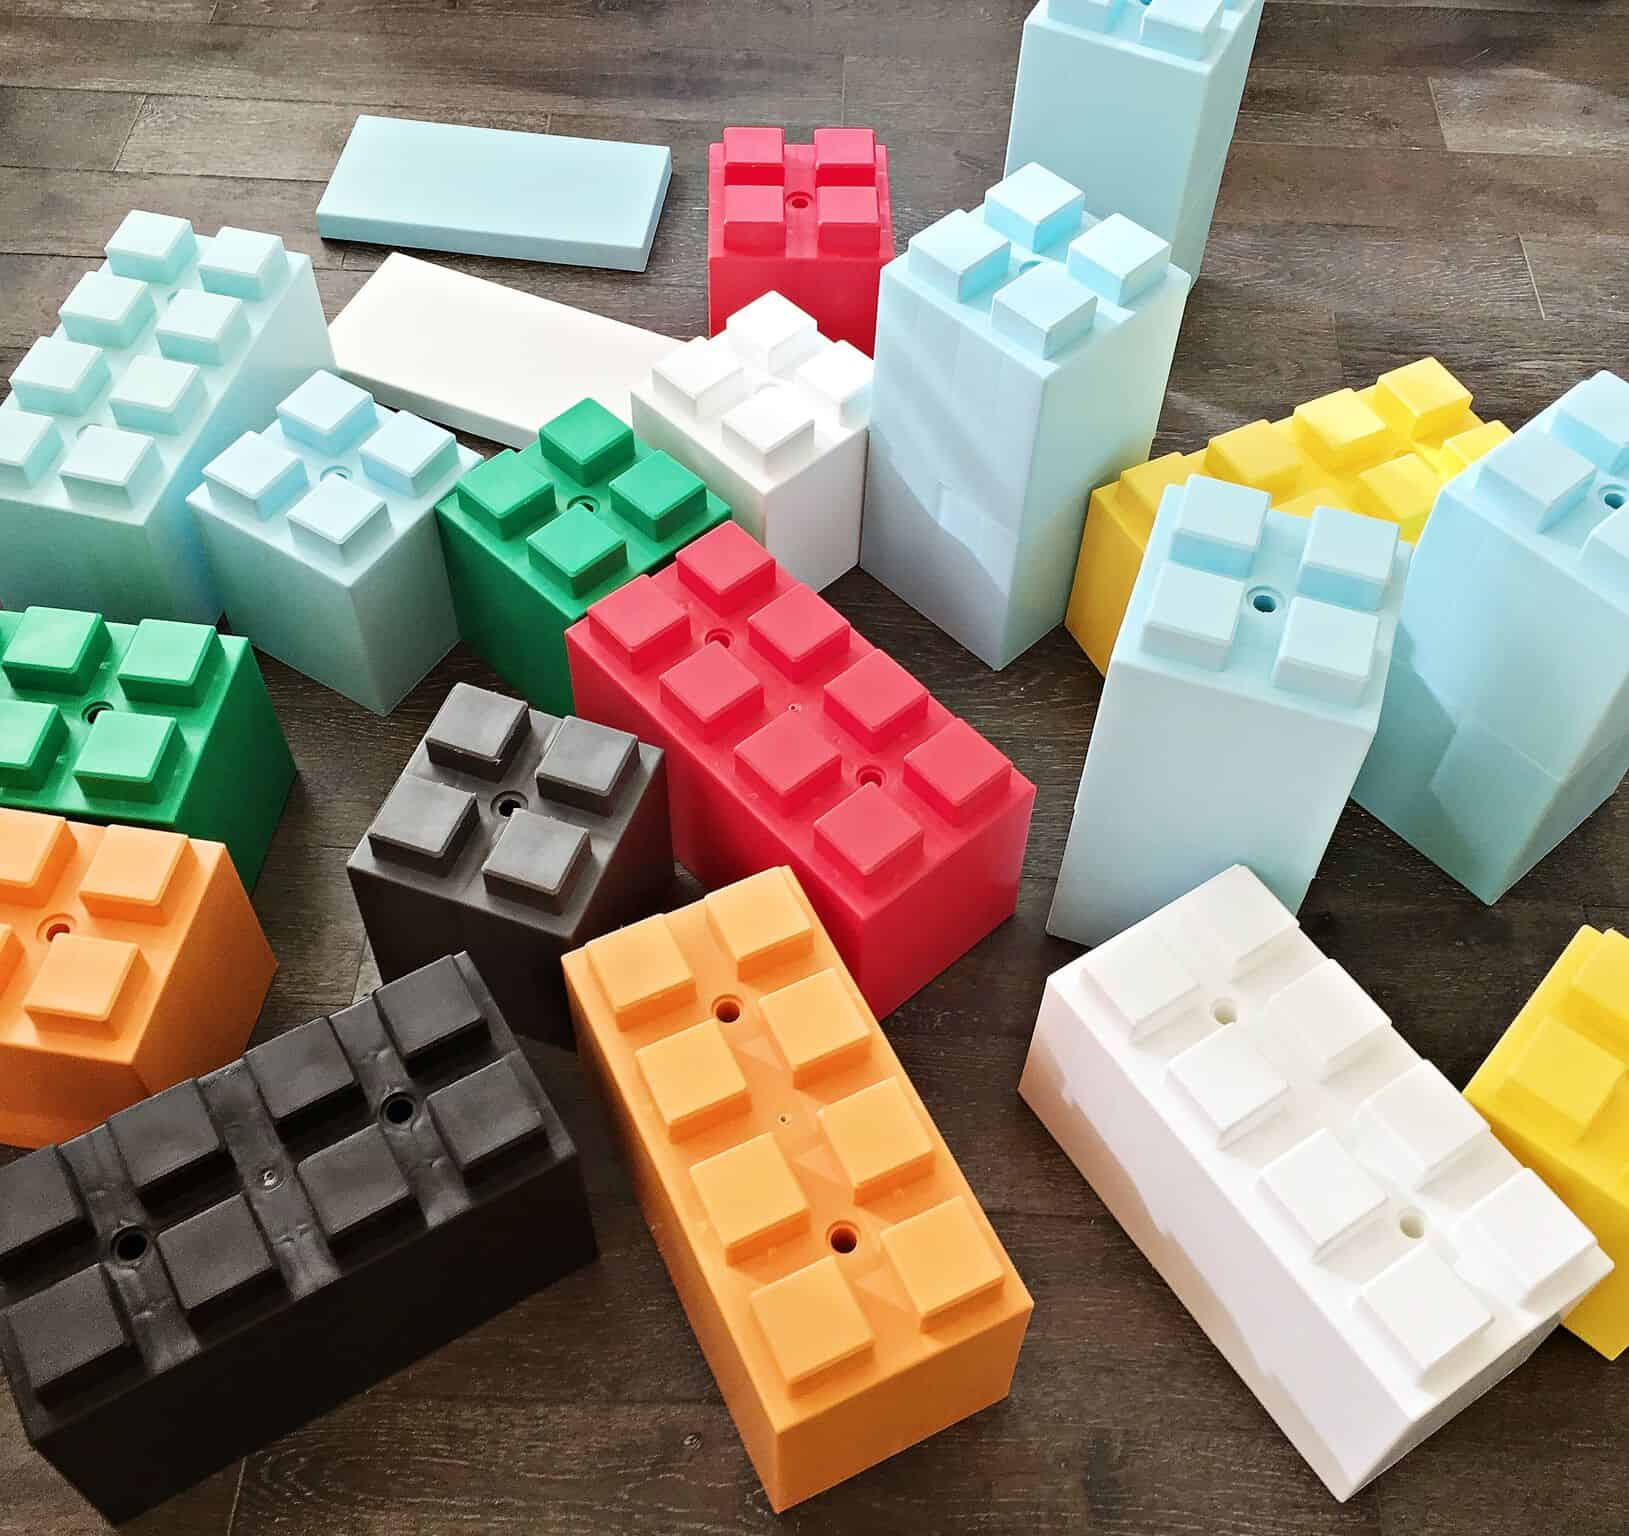 Lego Like Toys : Giant lego like building block toys for kids hello wonderful